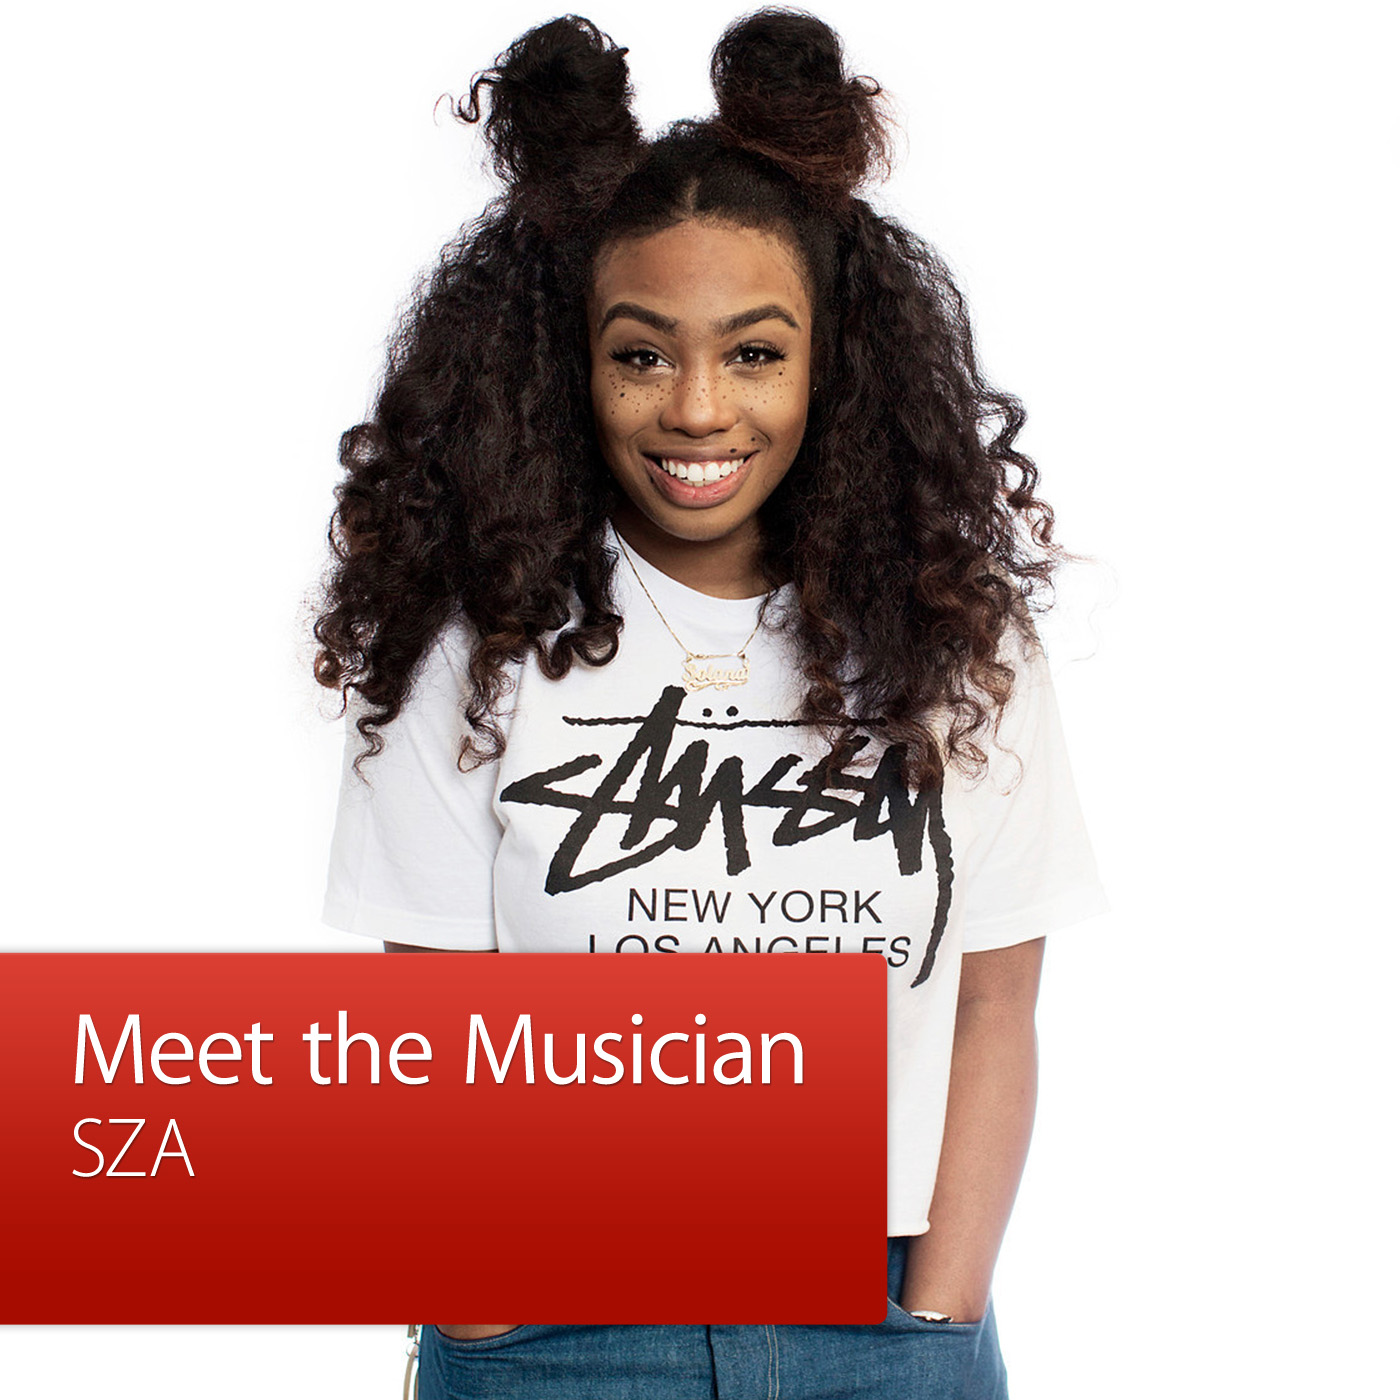 SZA: Meet the Musician